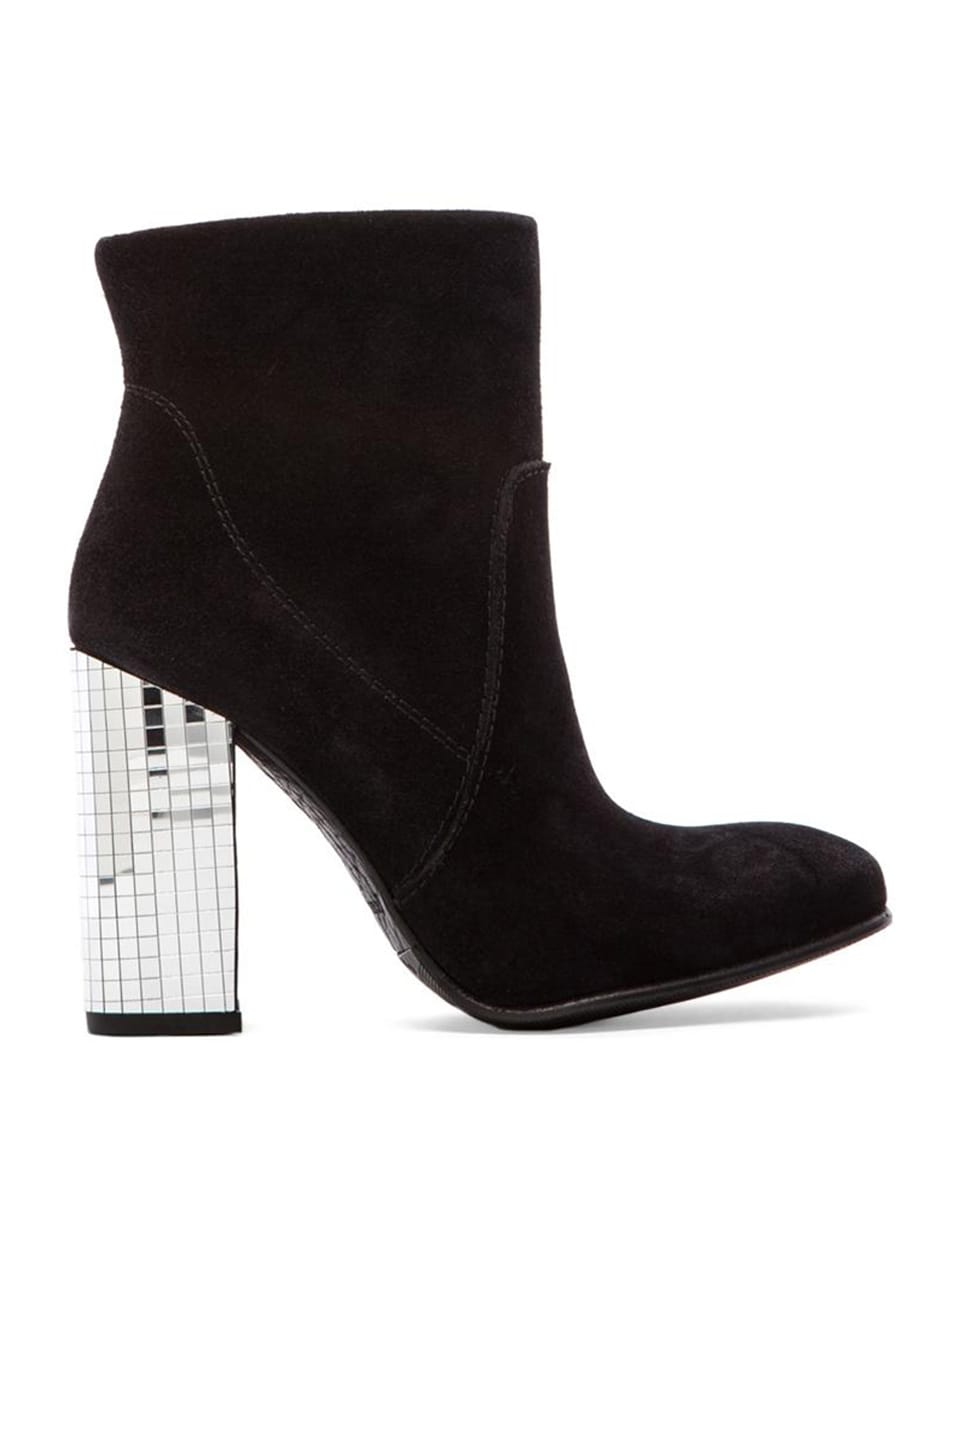 Pedro Garcia Bruna Disco Block Heel Bootie in Black & Silver